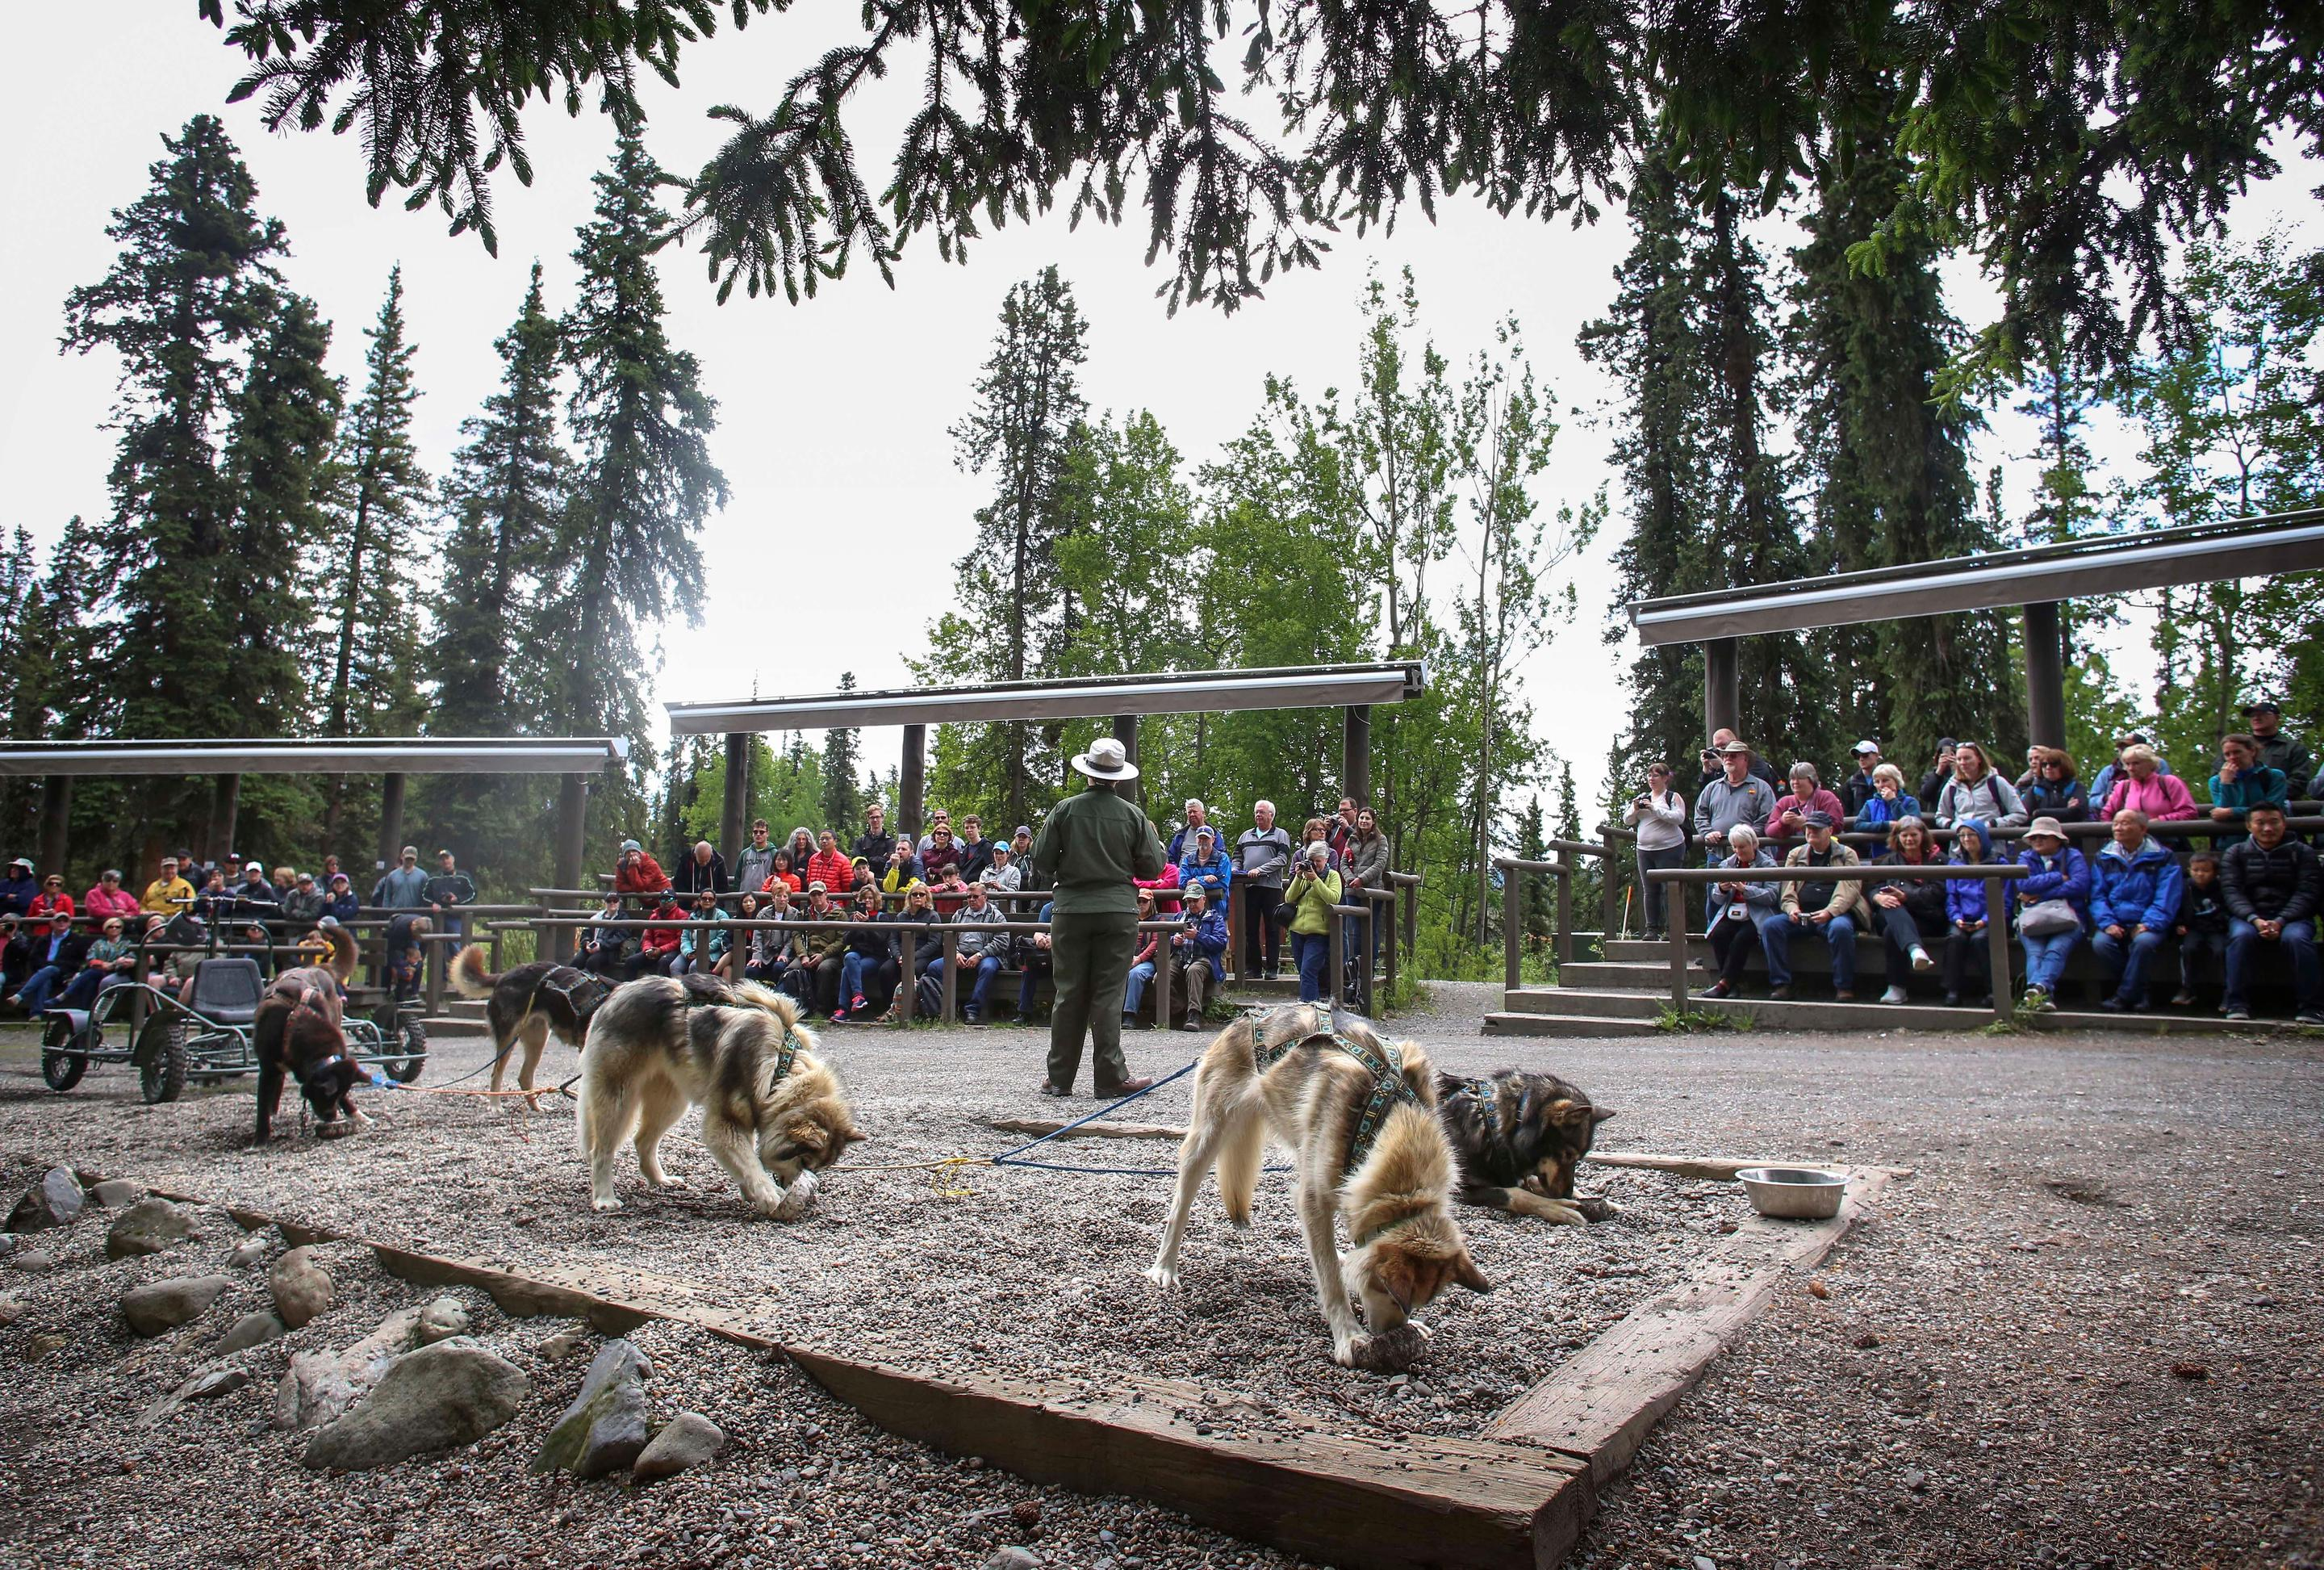 Sled Dog DemonstrationA crowd takes in a sled dog demonstration in the Denali Park Kennels